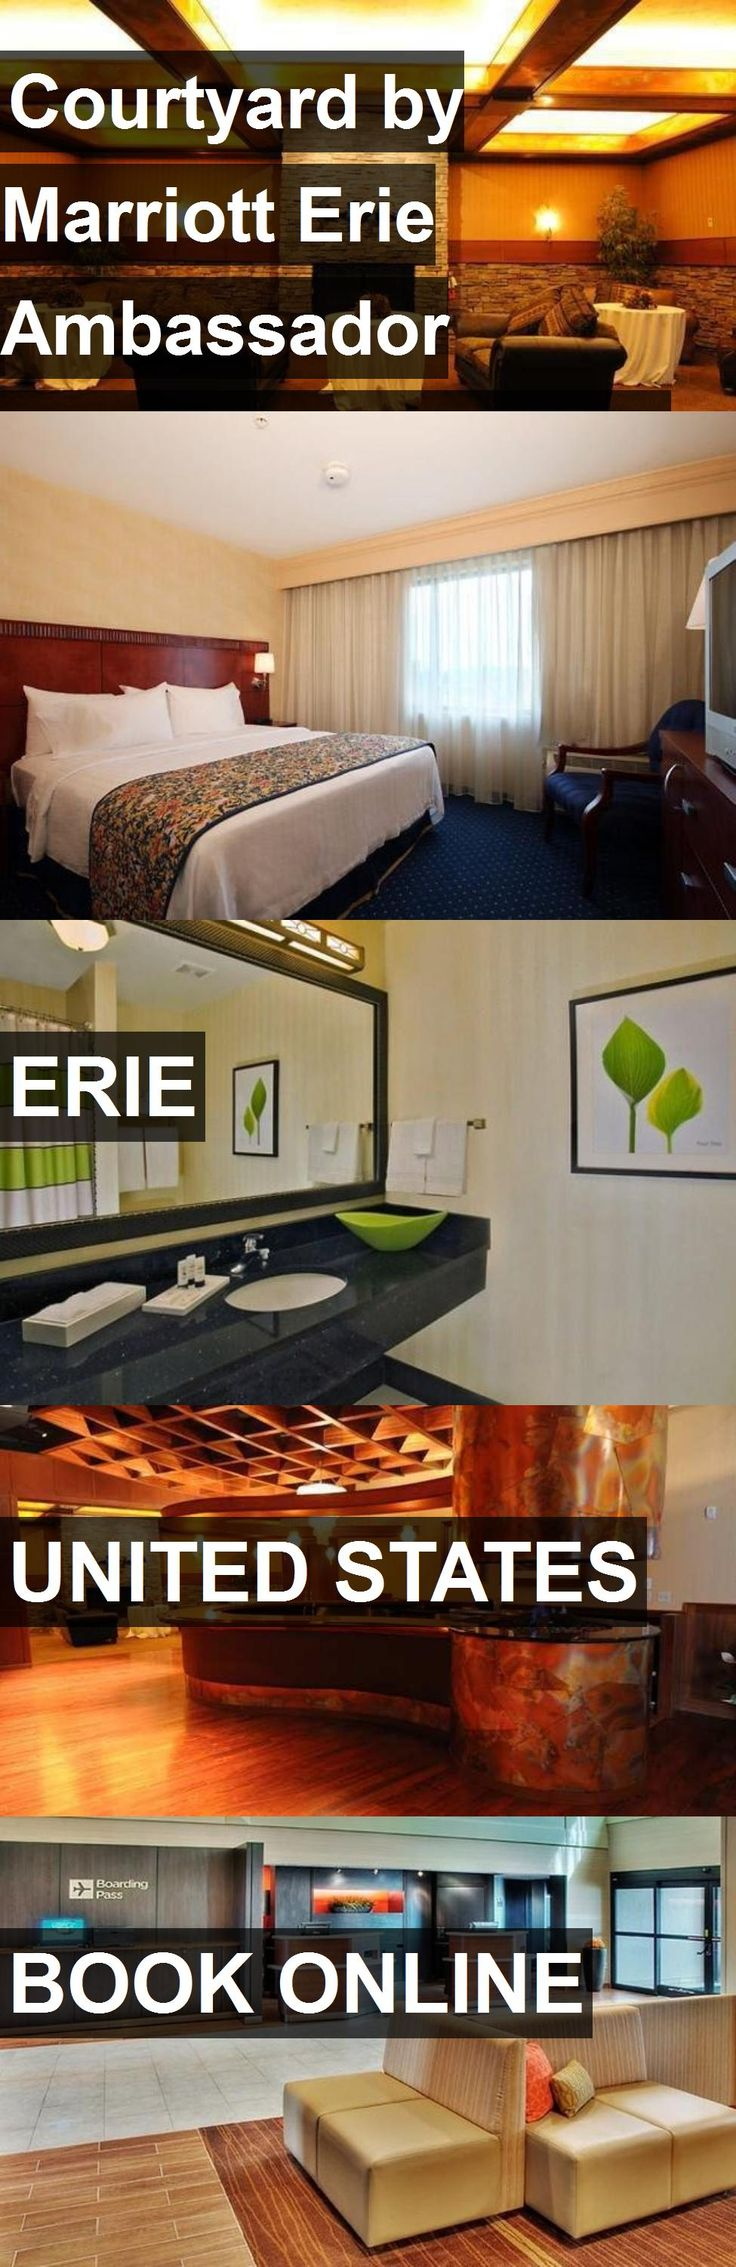 Hotel Courtyard by Marriott Erie Ambassador Conference Center in Erie, United States. For more information, photos, reviews and best prices please follow the link. #UnitedStates #Erie #travel #vacation #hotel